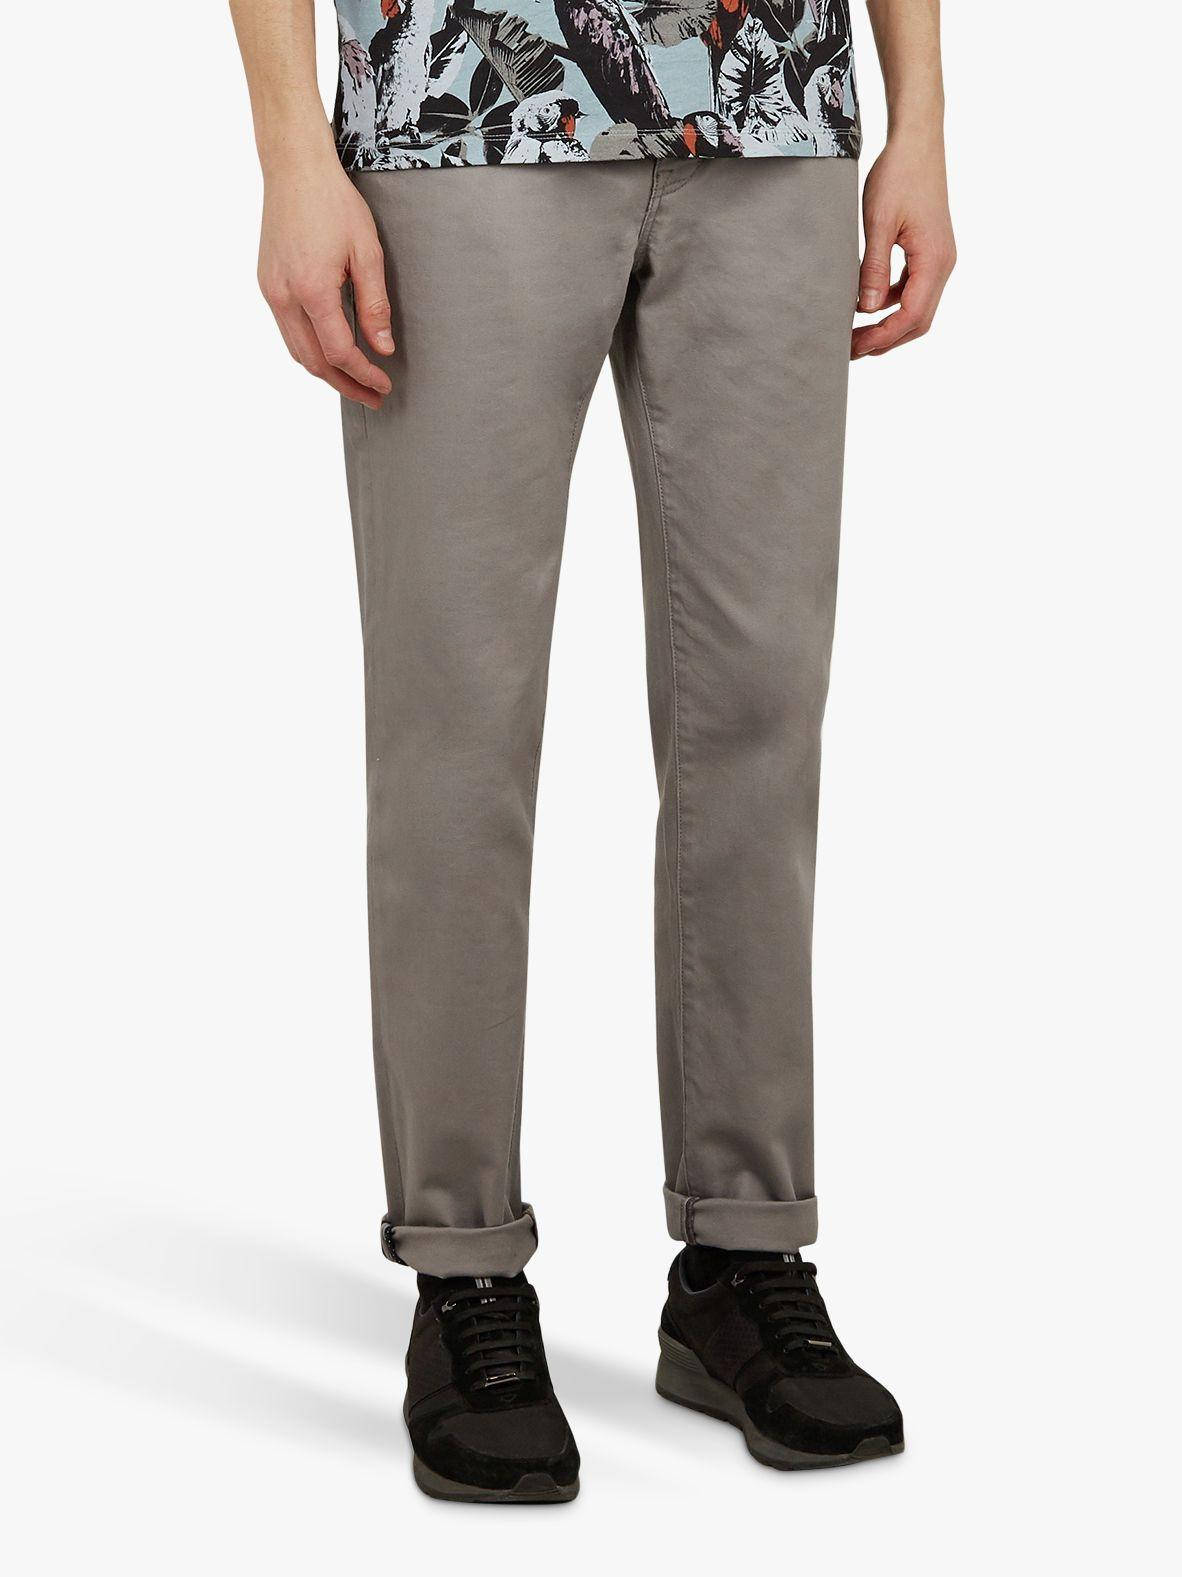 0420b3bf8c12 Ted Baker Colzza Straight Fit Jeans in Gray for Men - Lyst